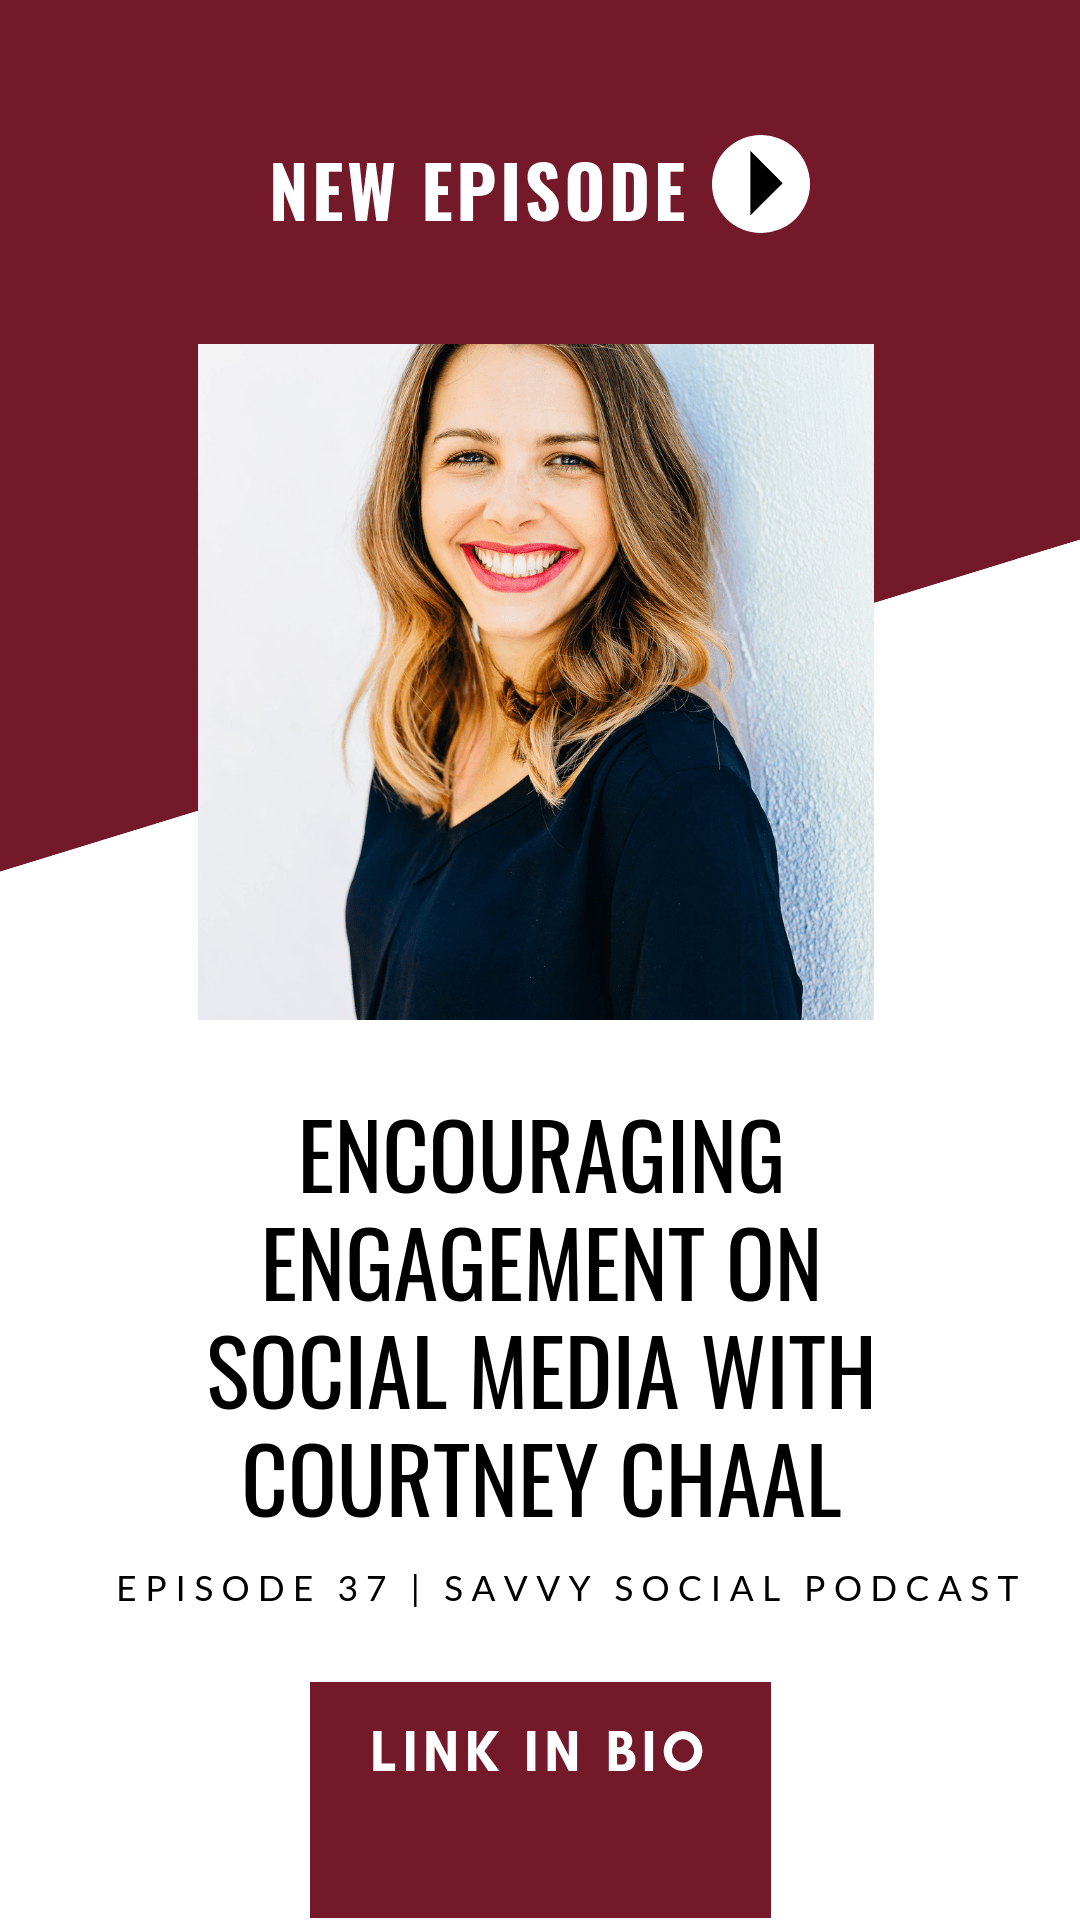 In this episode of the #SavvySocialPodcast, Courtney Chaal shares tangible ways you can use social media to start increasing your sales traffic.